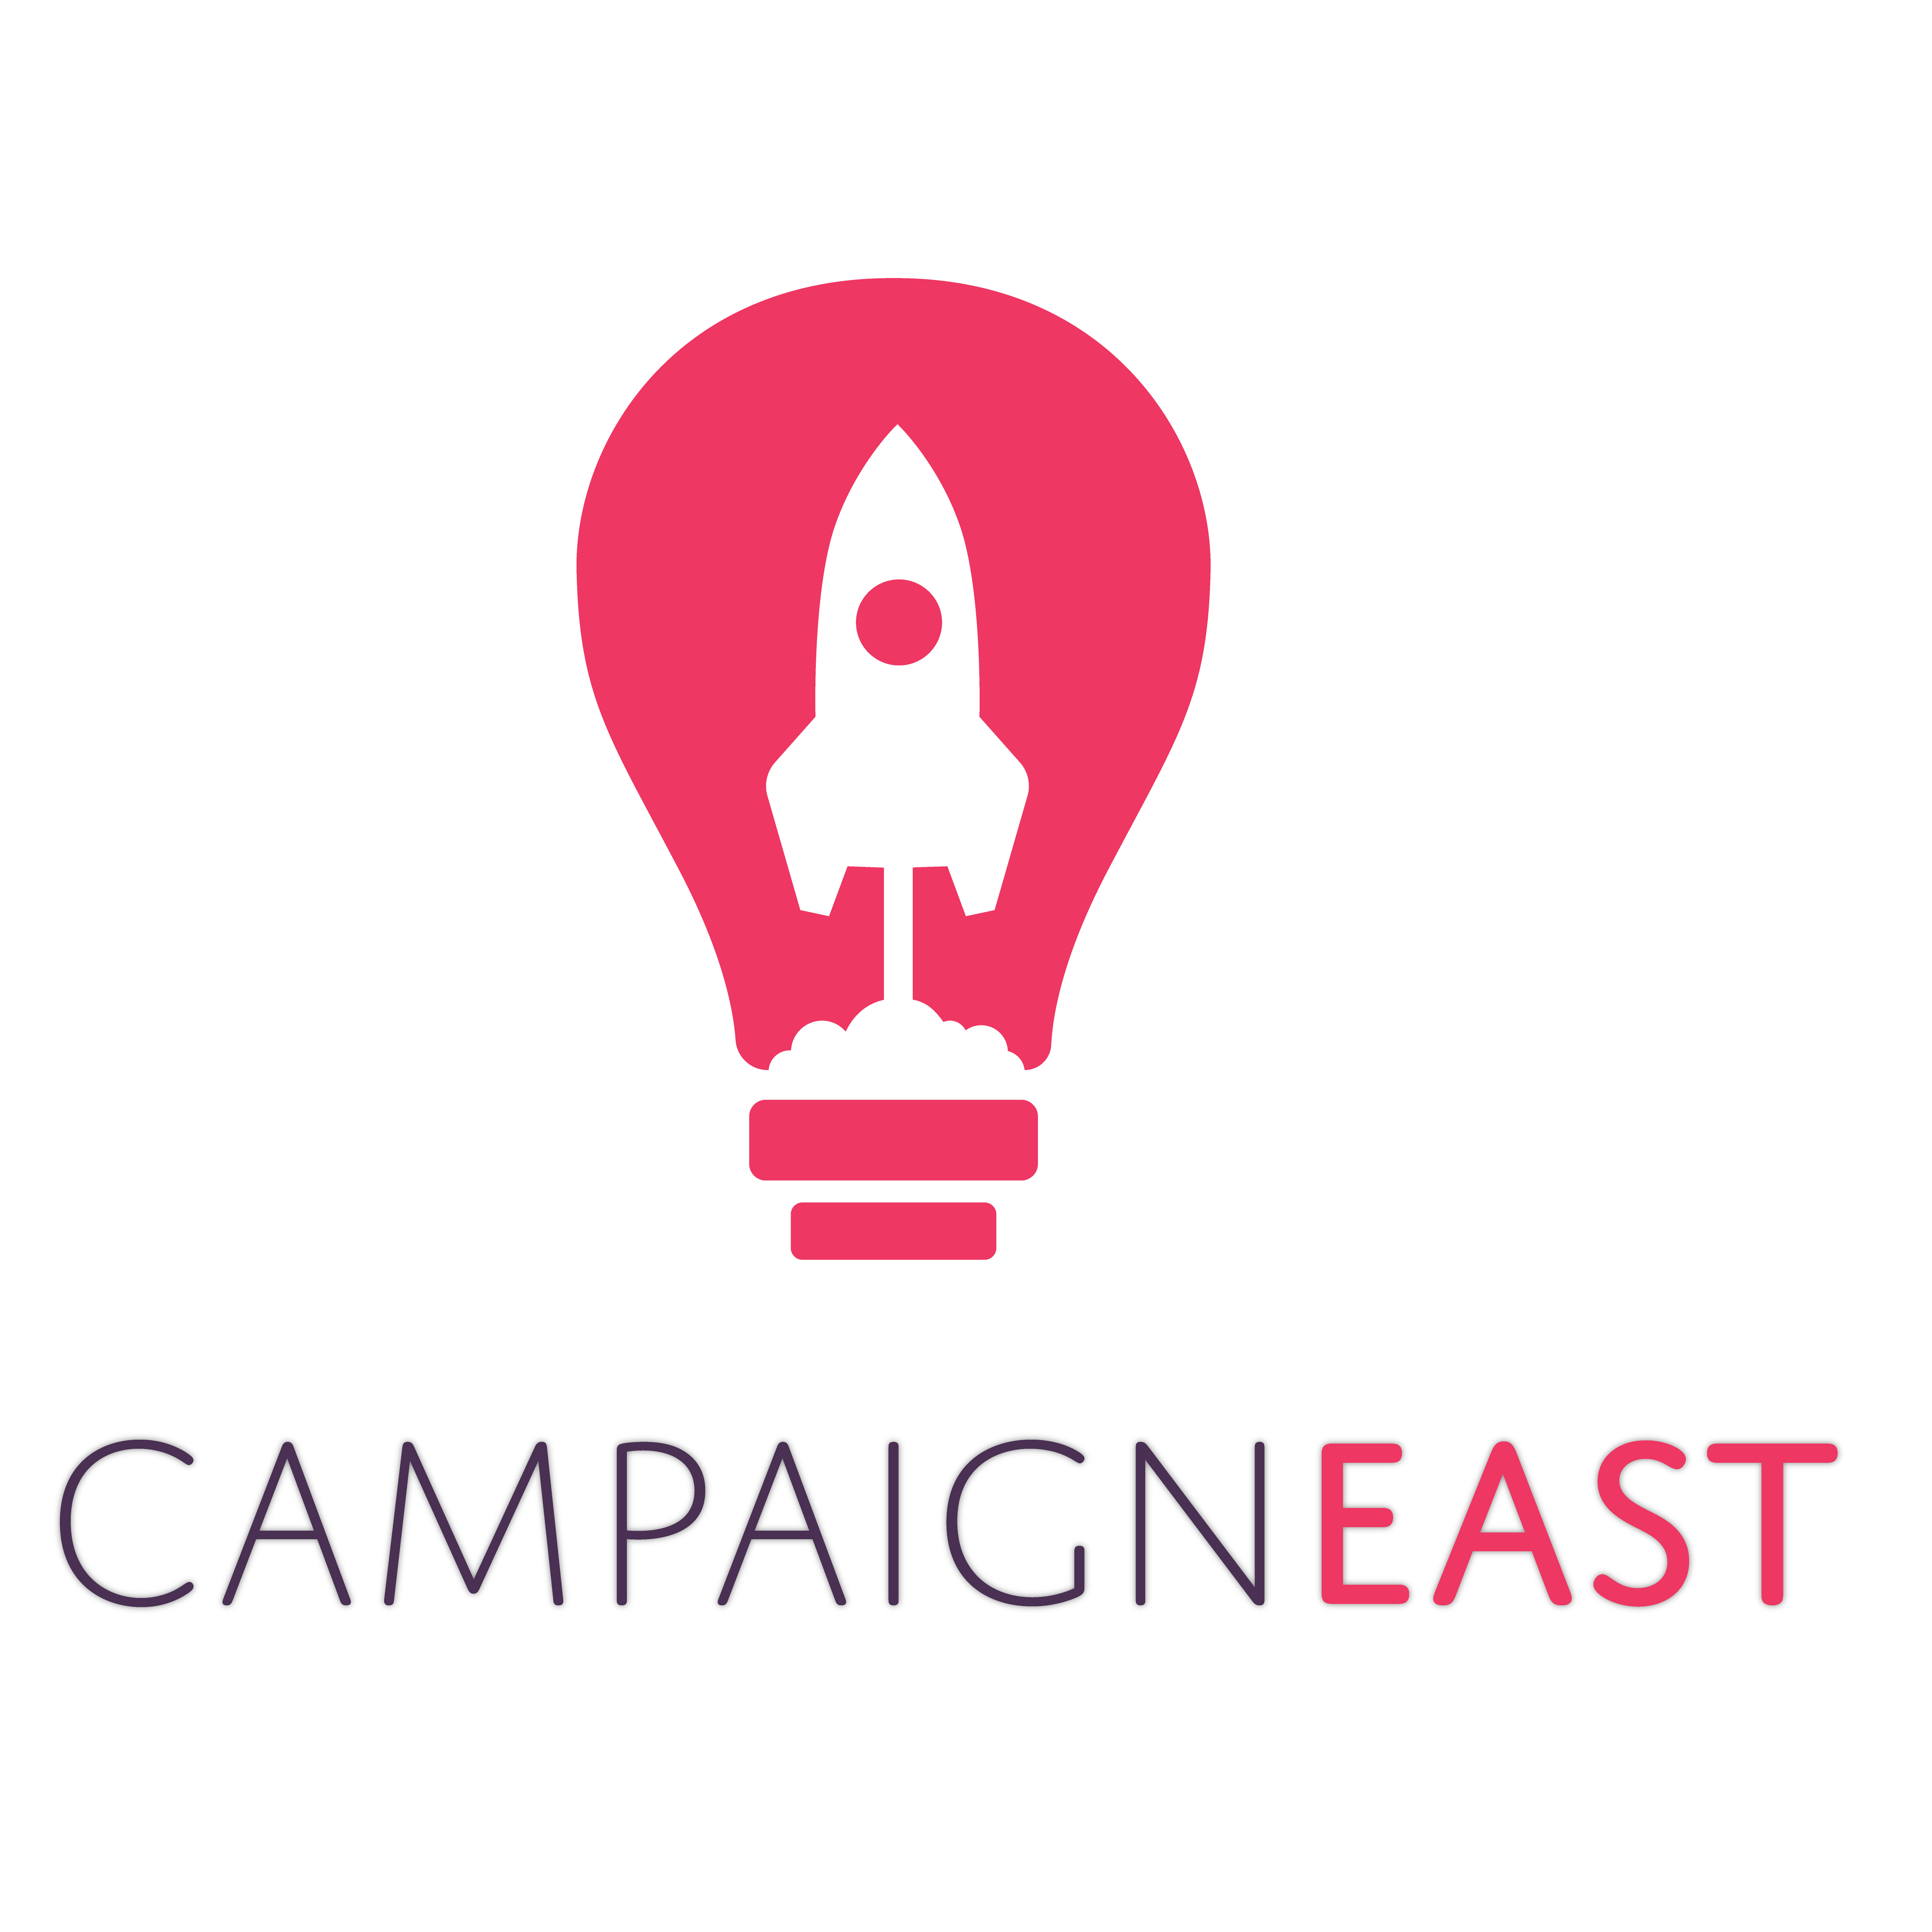 WeCampaign - Glendale, CA - Advertising Agencies & Public Relations